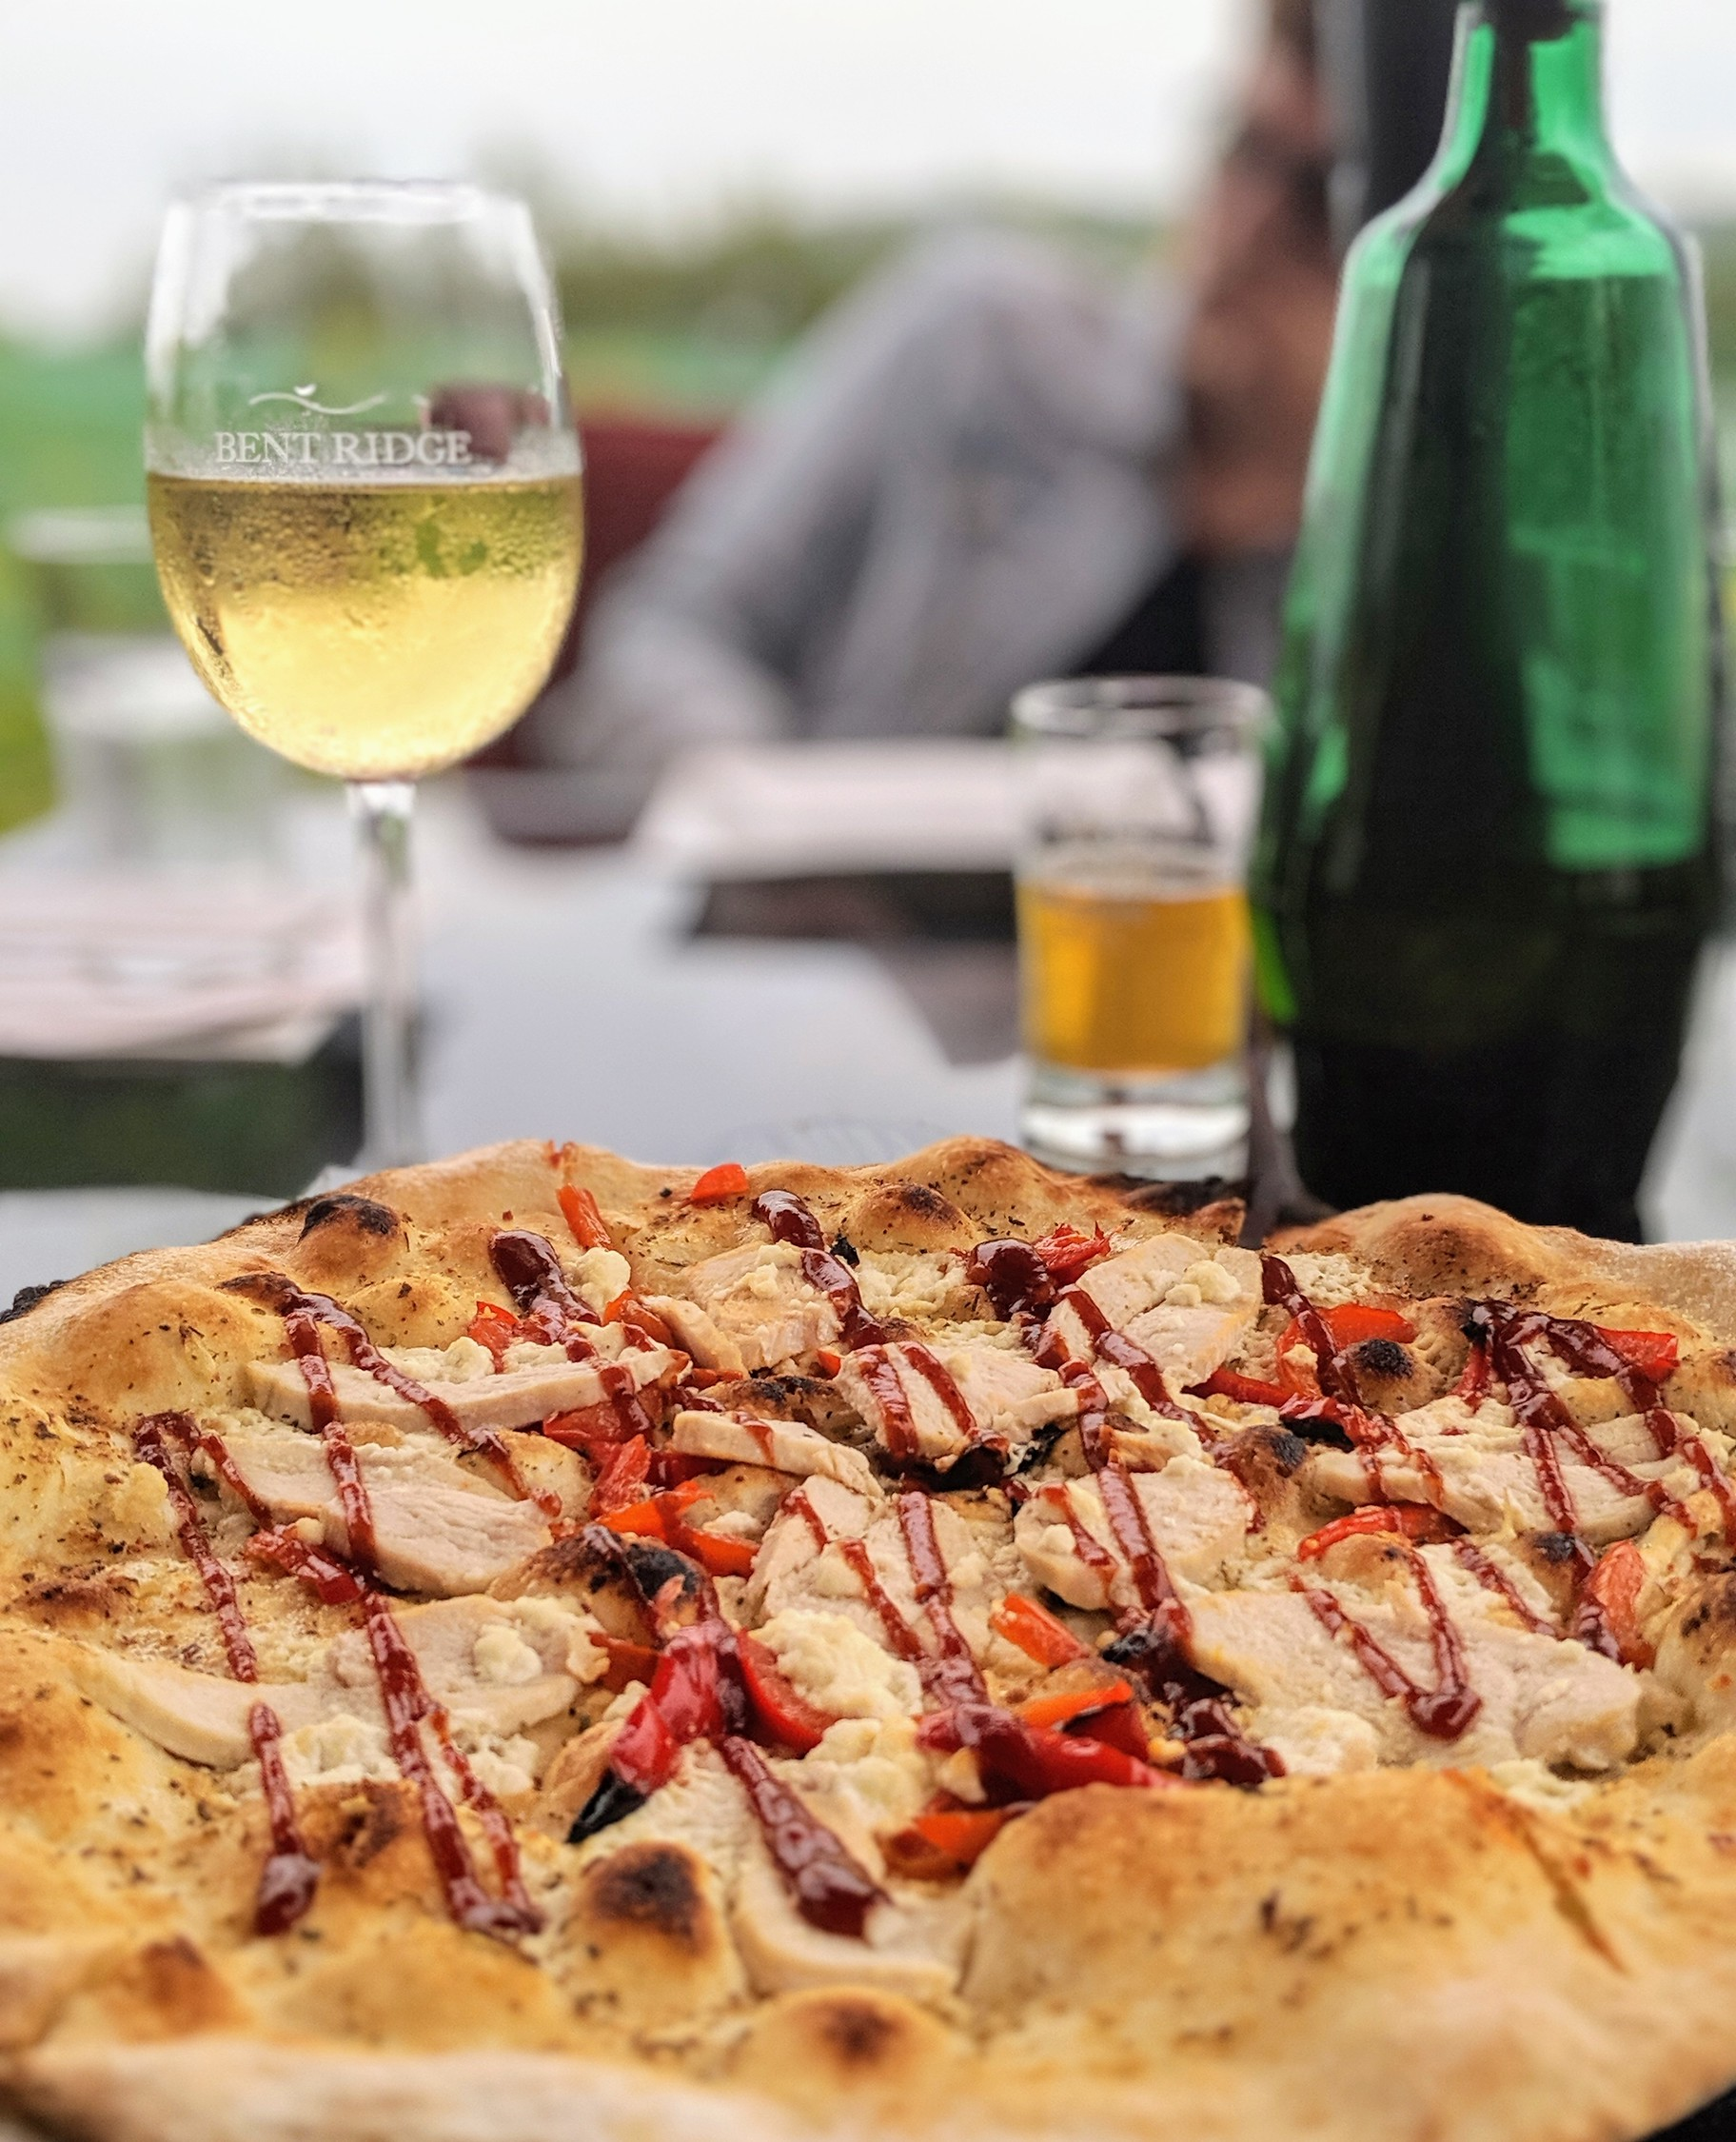 Bent Ridge Winery and Cucina pizza in Falmouth Nova Scotia